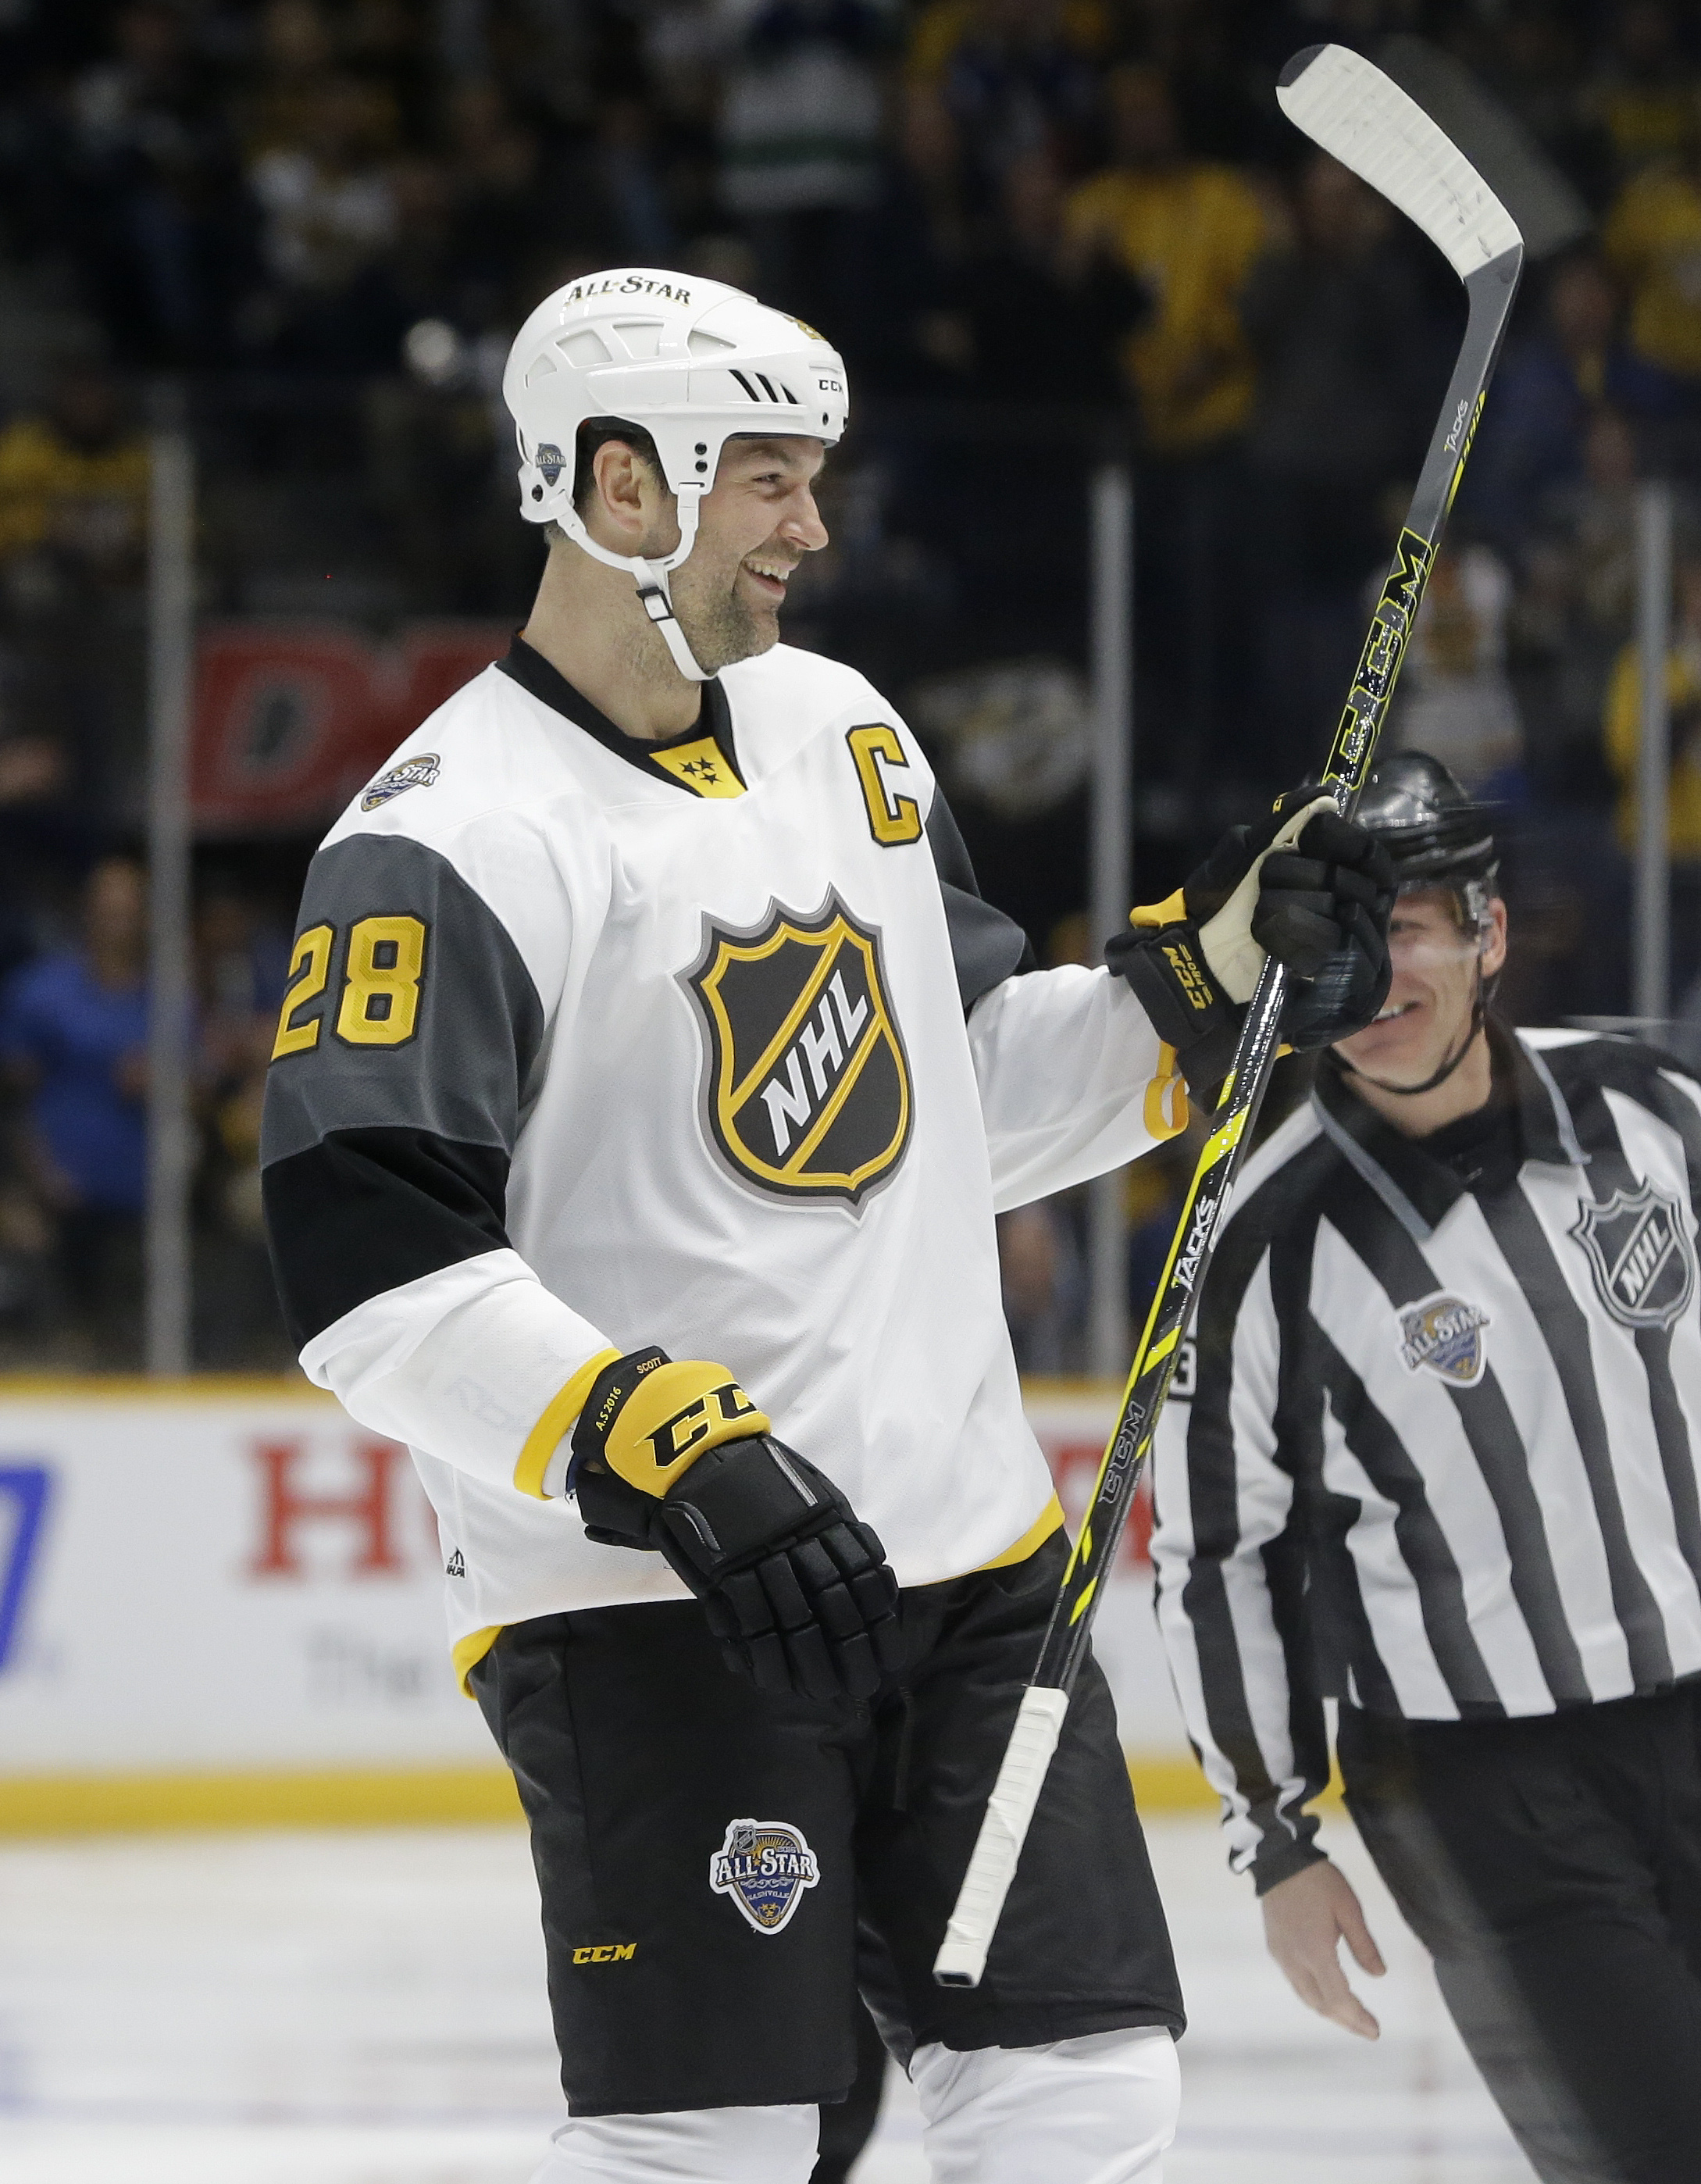 Pacific Division forward John Scott (28) skates to the bench after scoring a goal against the Central Division during an NHL hockey All-Star semifinal round game Sunday, Jan. 31, 2016, in Nashville, Tenn. (AP Photo/Mark Humphrey)